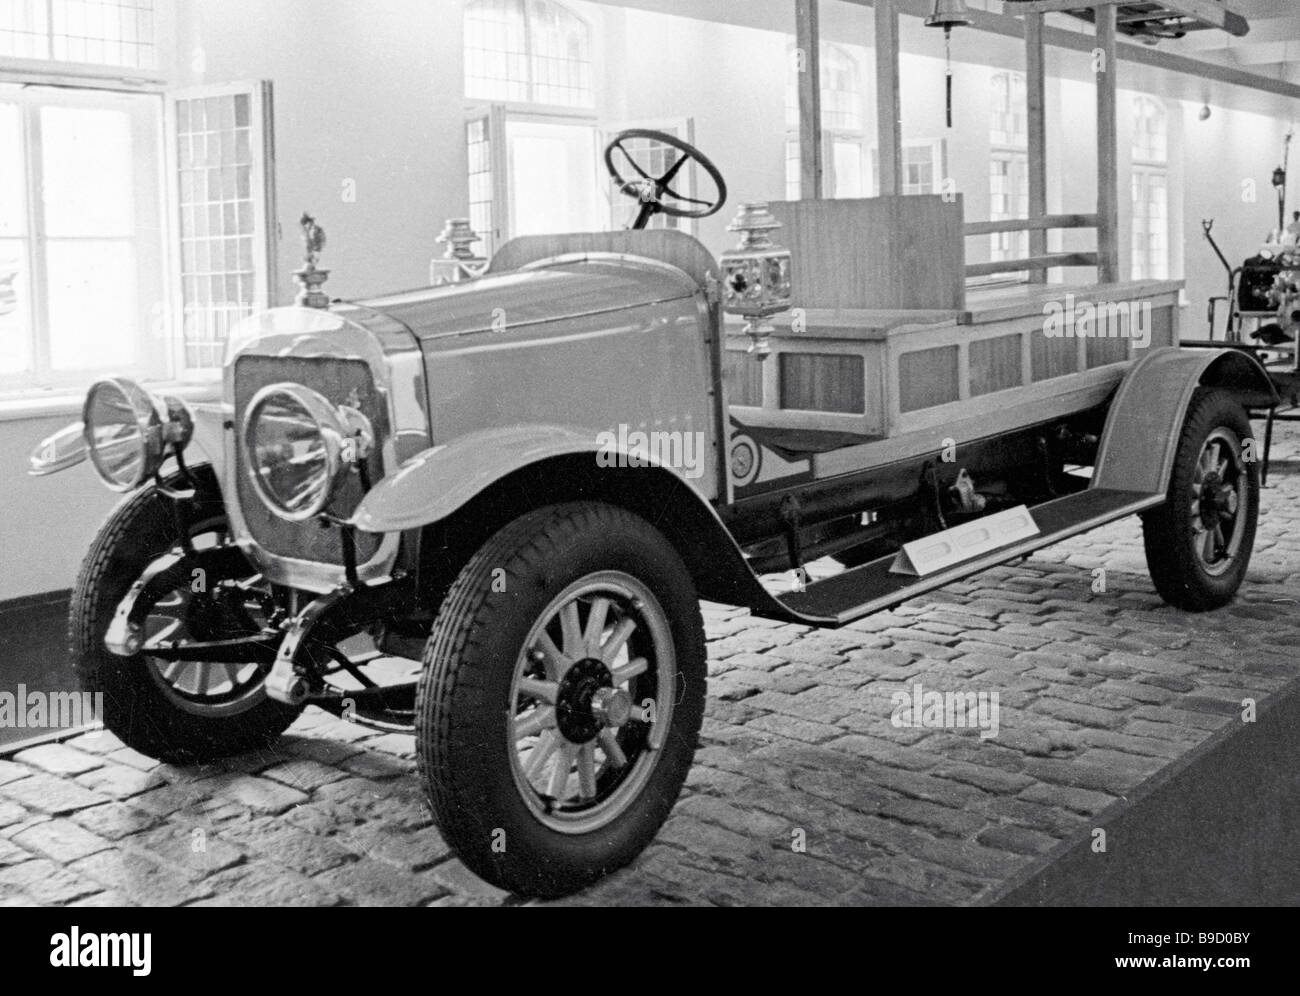 A fire fighting version of the Russo Balt vehicle in the Riga museum of vintage cars - Stock Image